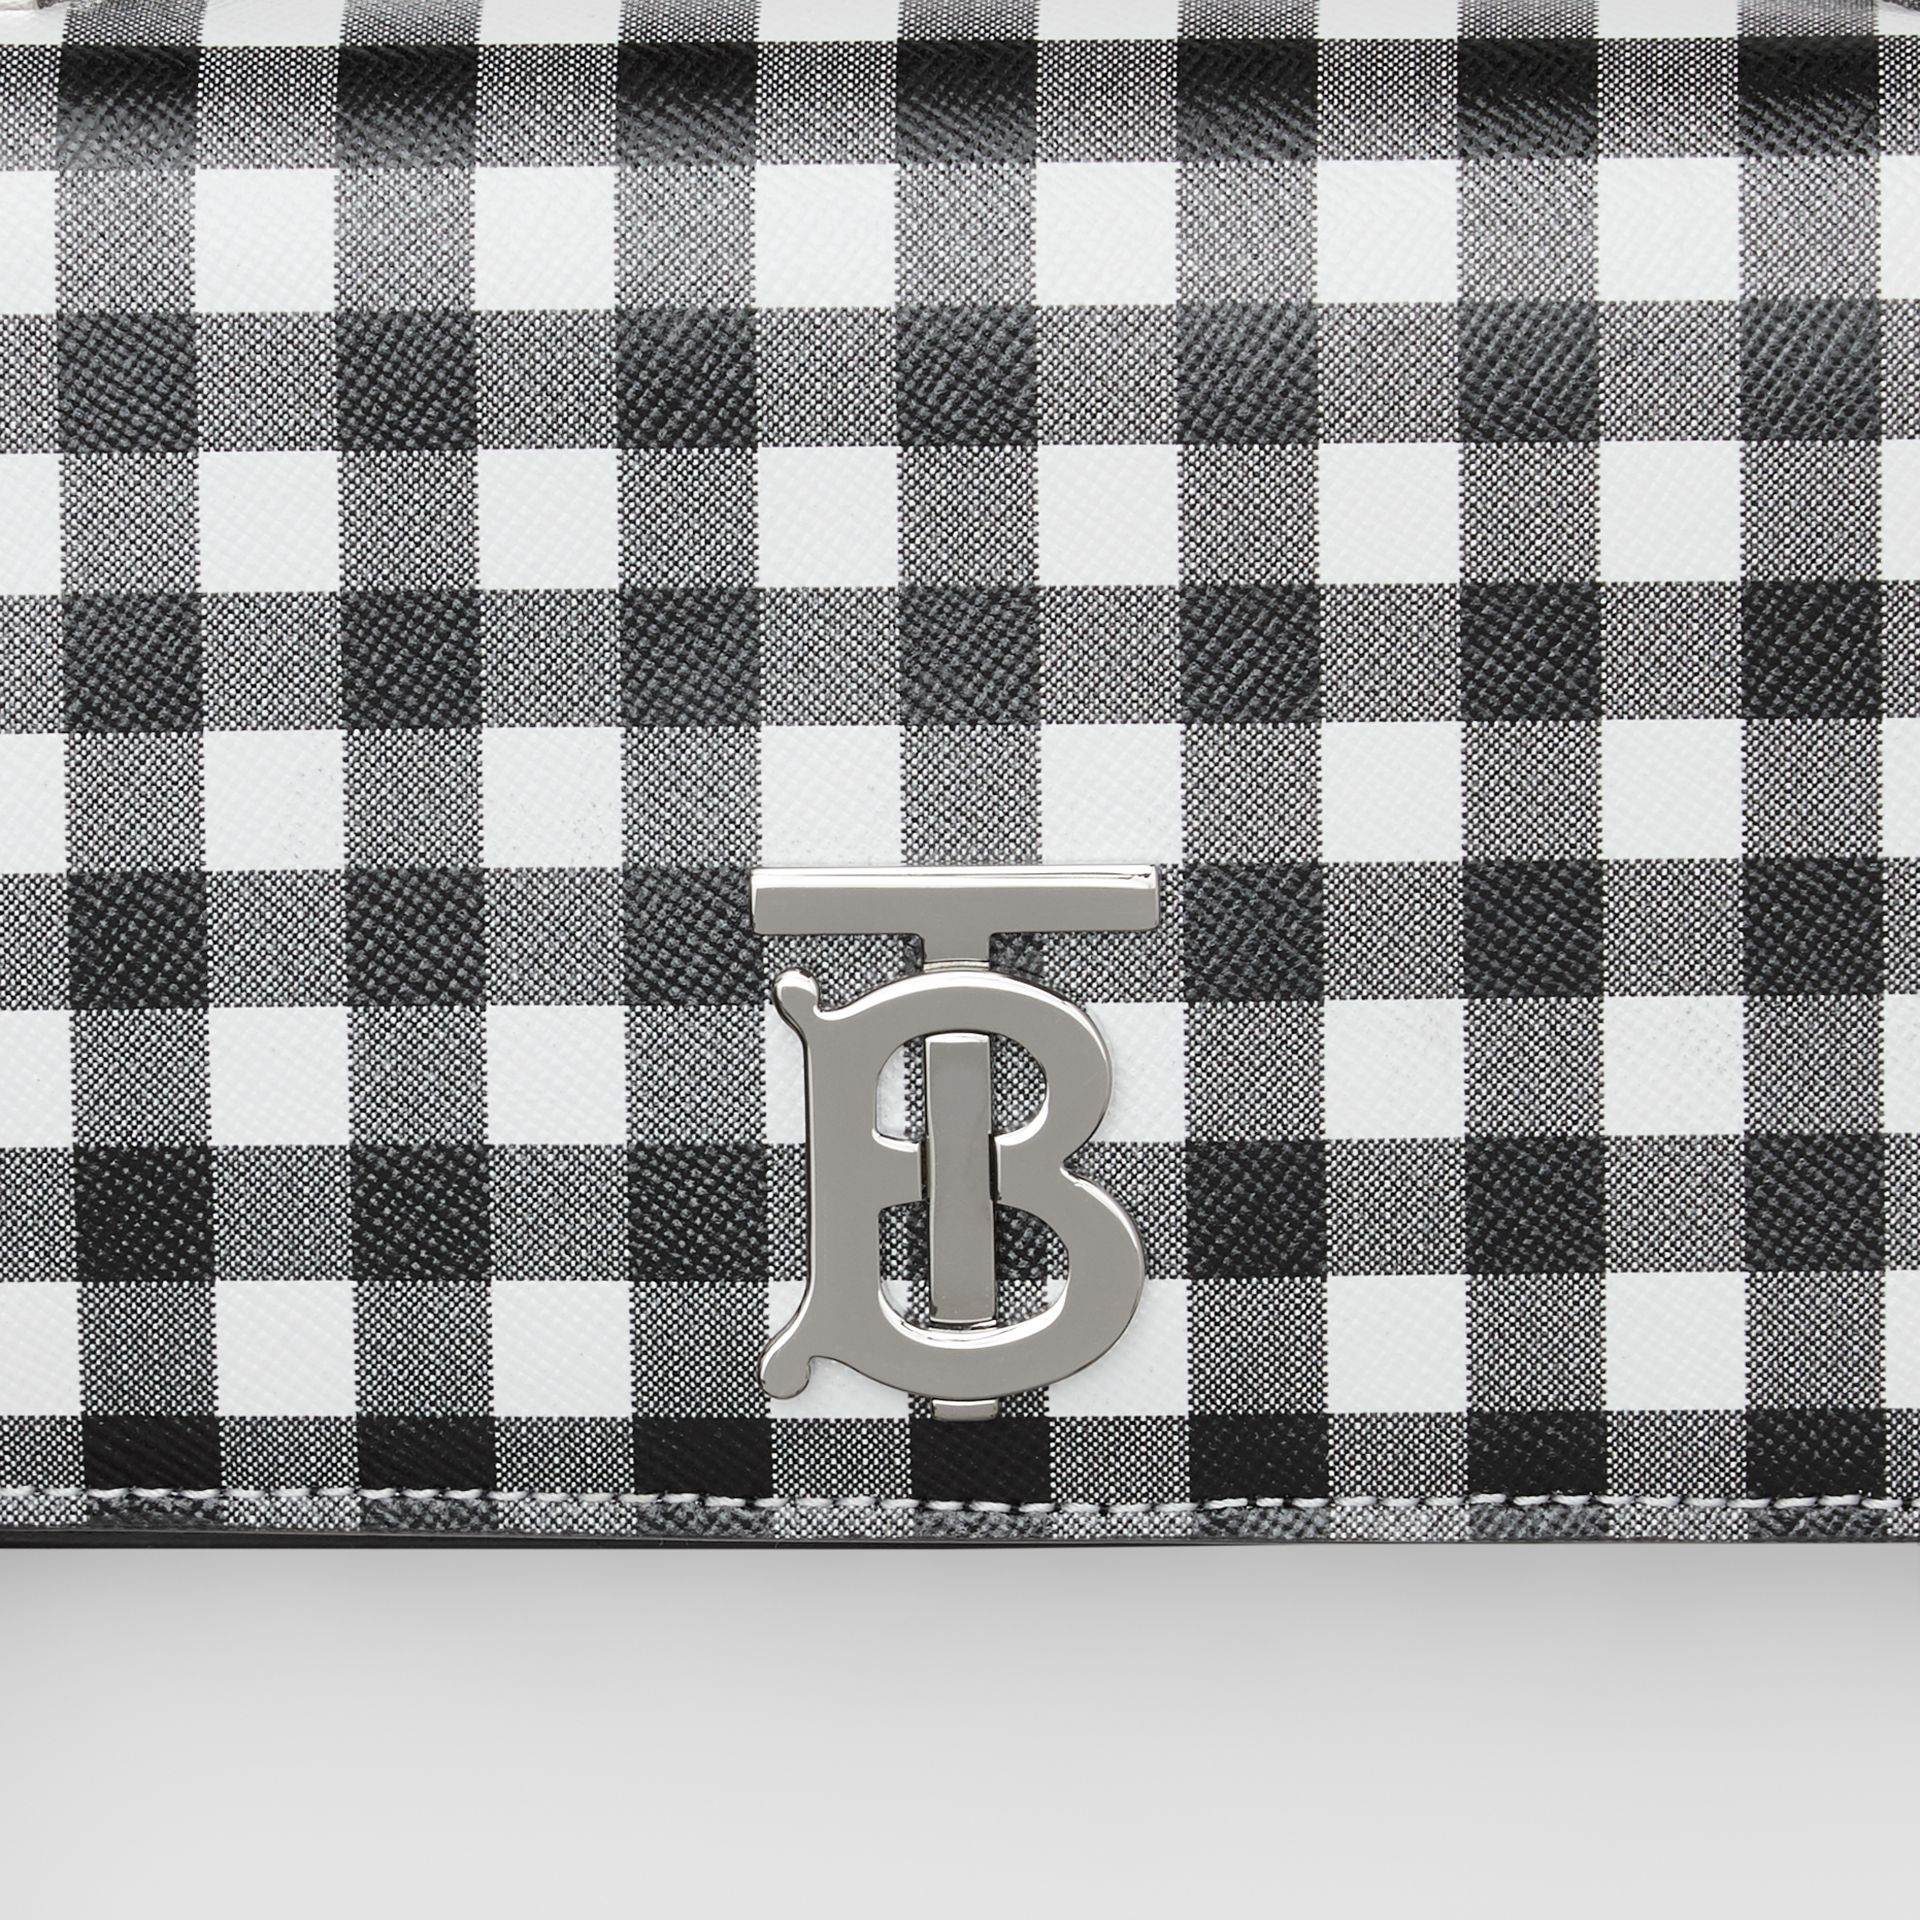 Mini Gingham Leather Lola Bag in Black/white - Women | Burberry - gallery image 1